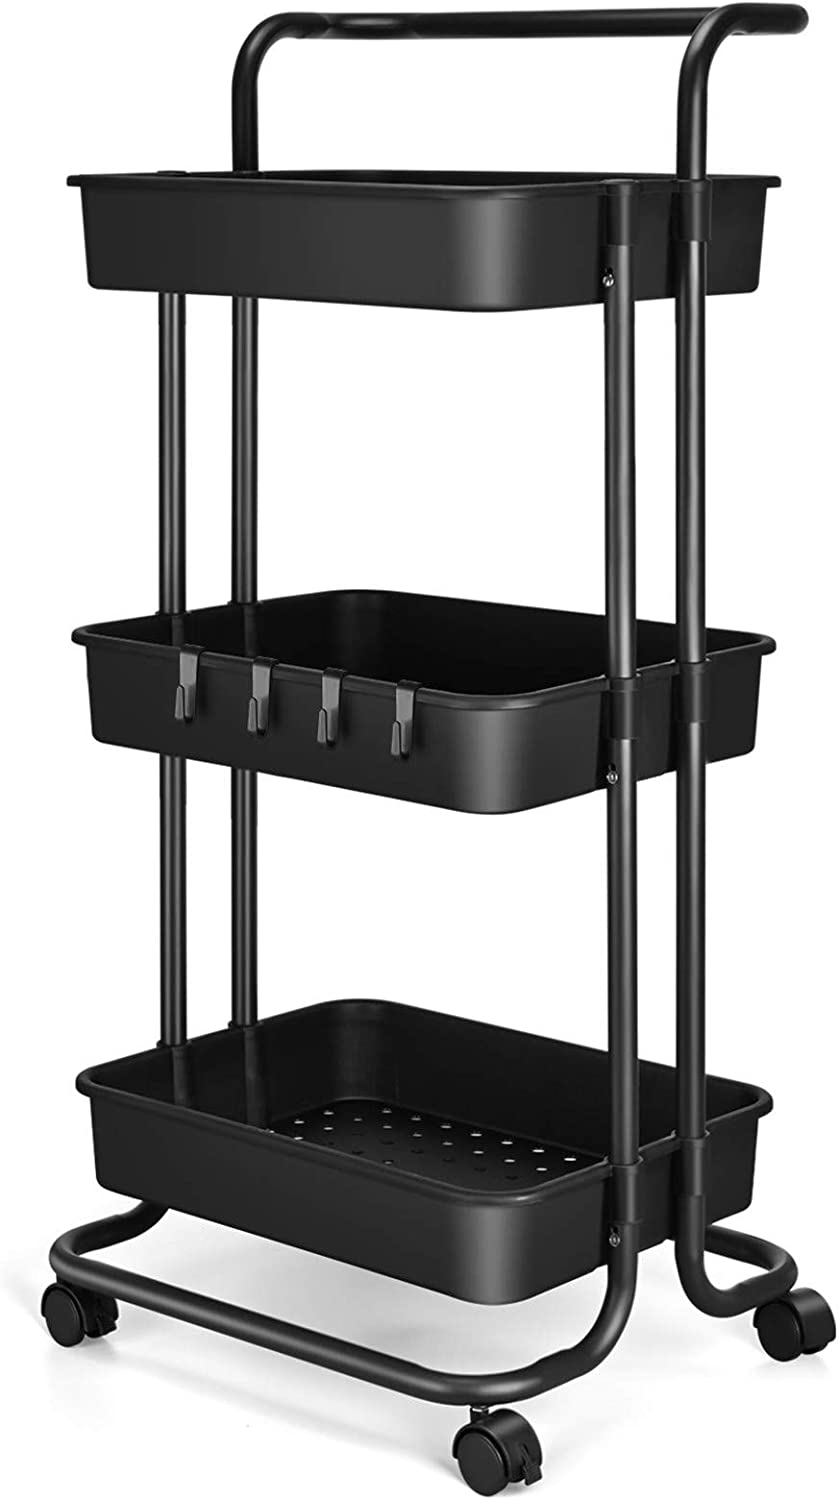 3 Tier Utility Rolling Cart - Organizer Cart Storage Cart Kitchen Cart Makeup Cart 3 Shelf Baby Tray Cart with Trolley Handles and Wheels Suitable for Bathroom Laundry Kids Room Bedroom Office (Black)